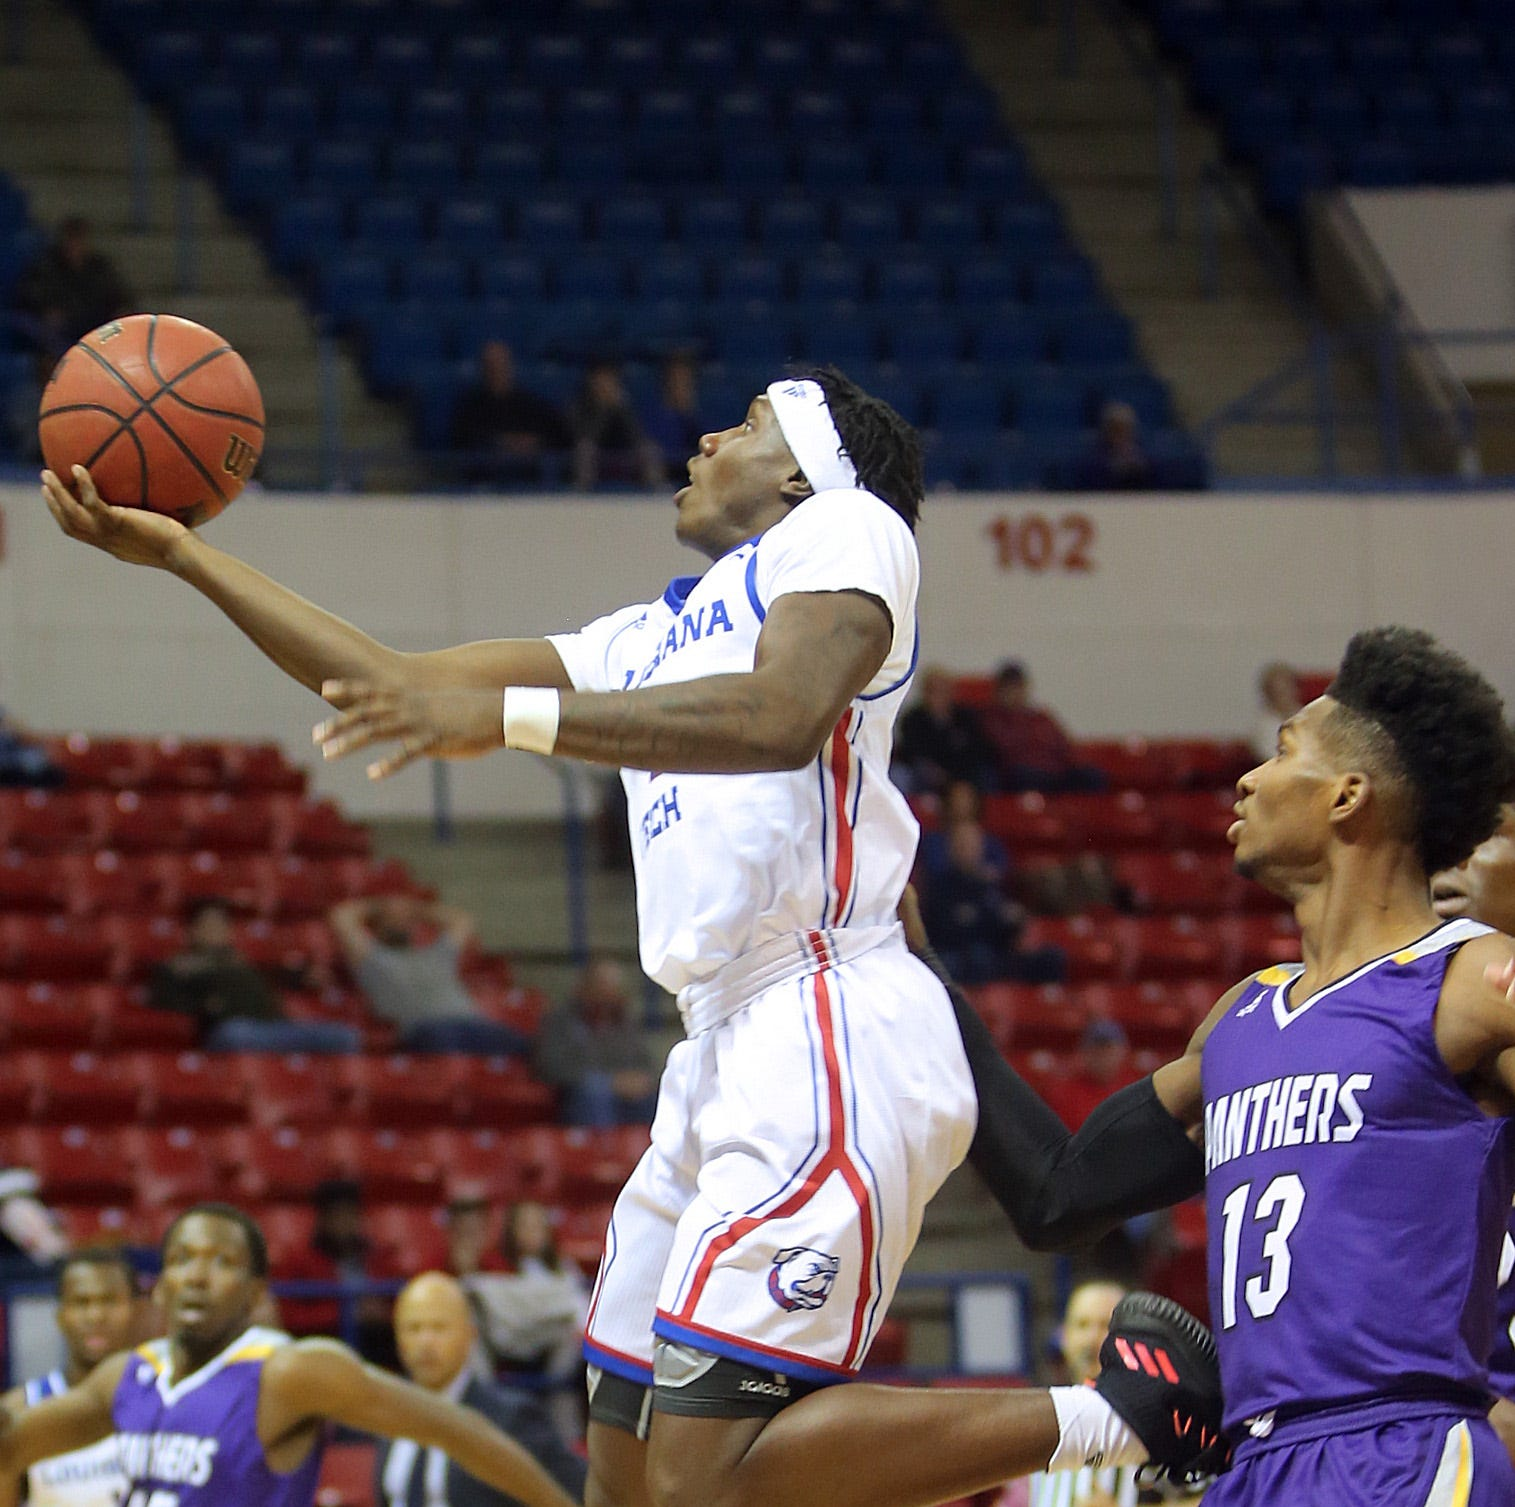 Louisiana Tech uses strong second half to take road victory at UL Lafayette